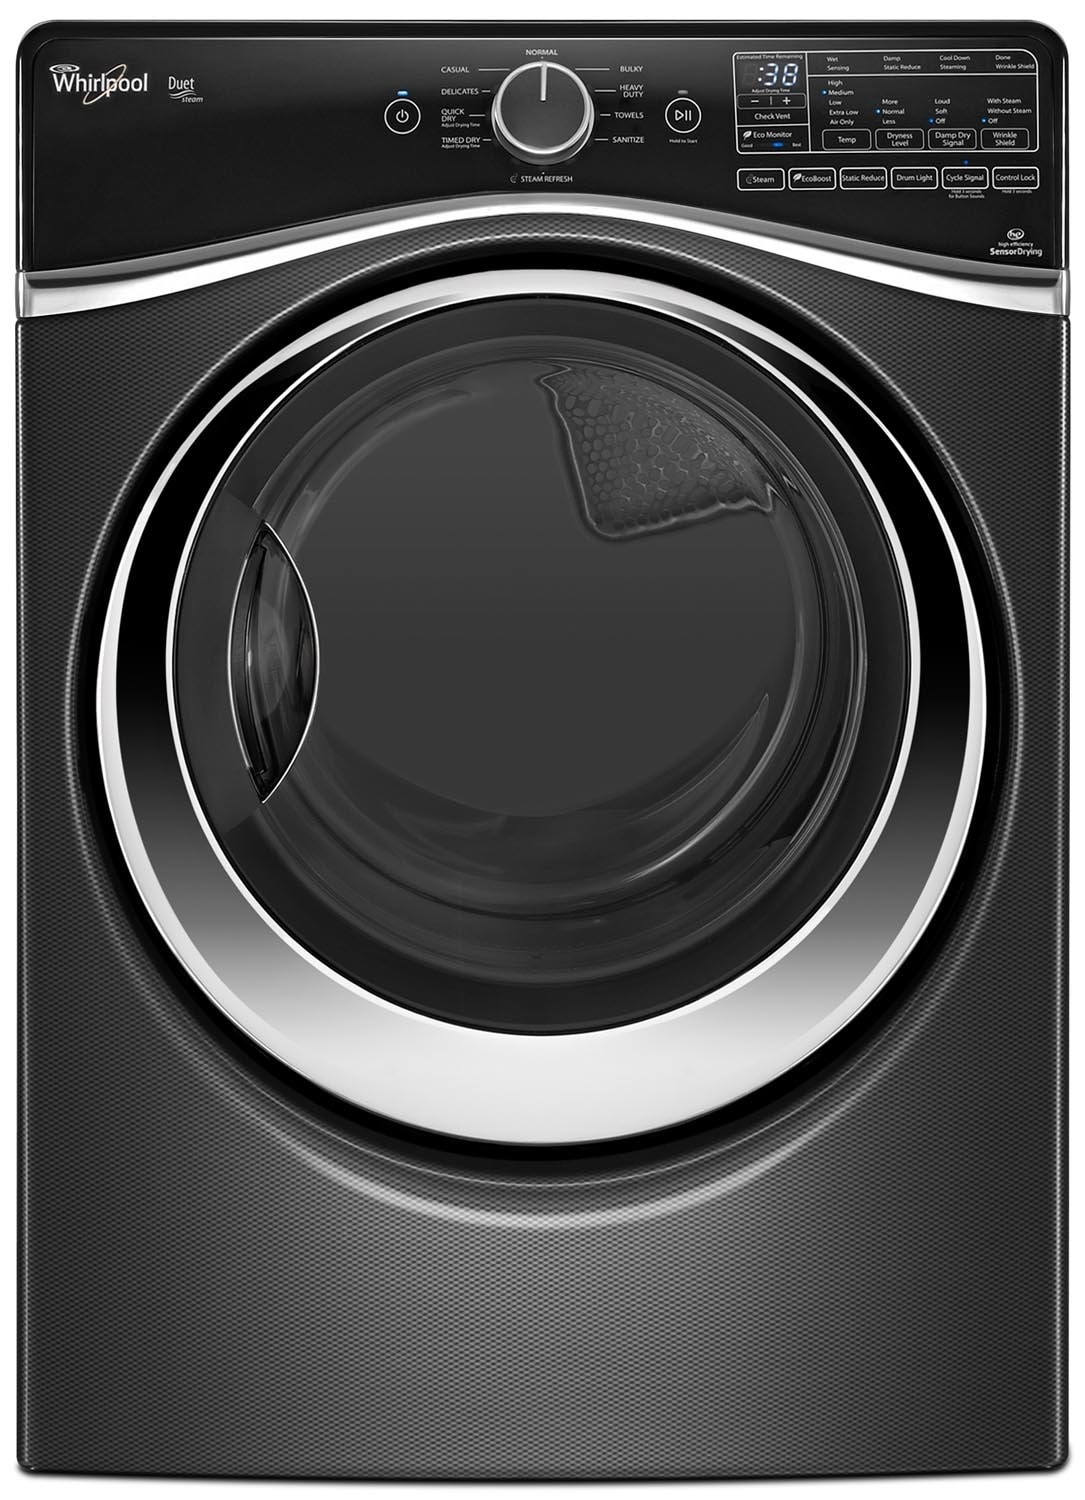 Washers and Dryers - Whirlpool Gas Dryer (7.3 Cu. Ft.) WGD97HEDBD